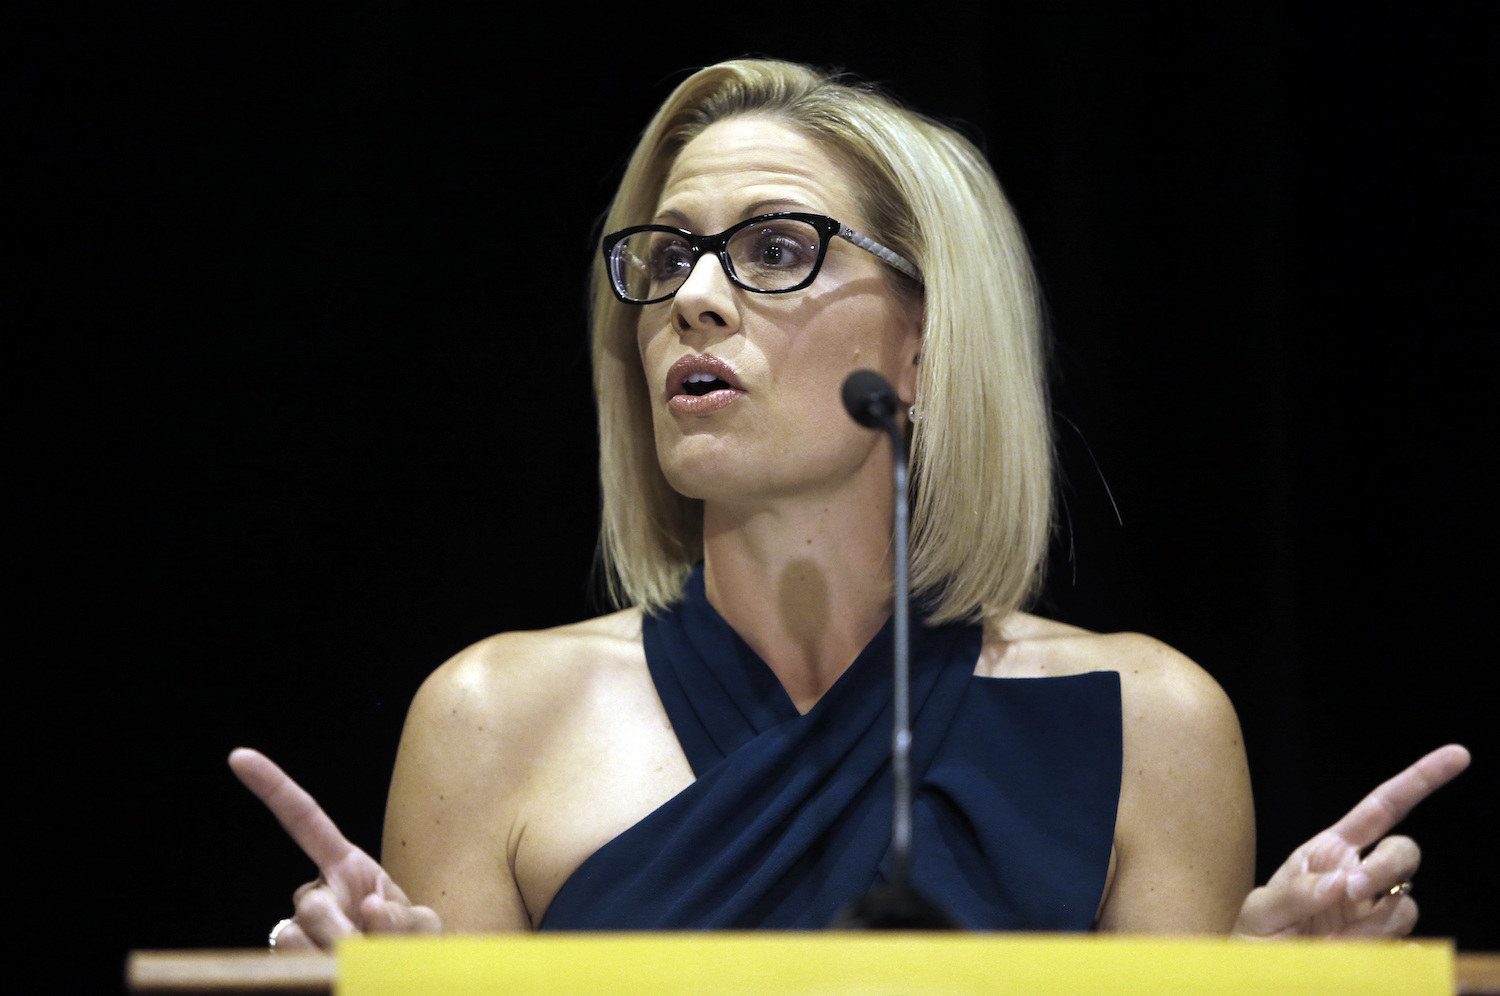 Democrat Kyrsten Sinema, The First Openly Bisexual Person Elected To Congress, Has Won Arizona's Senate Race